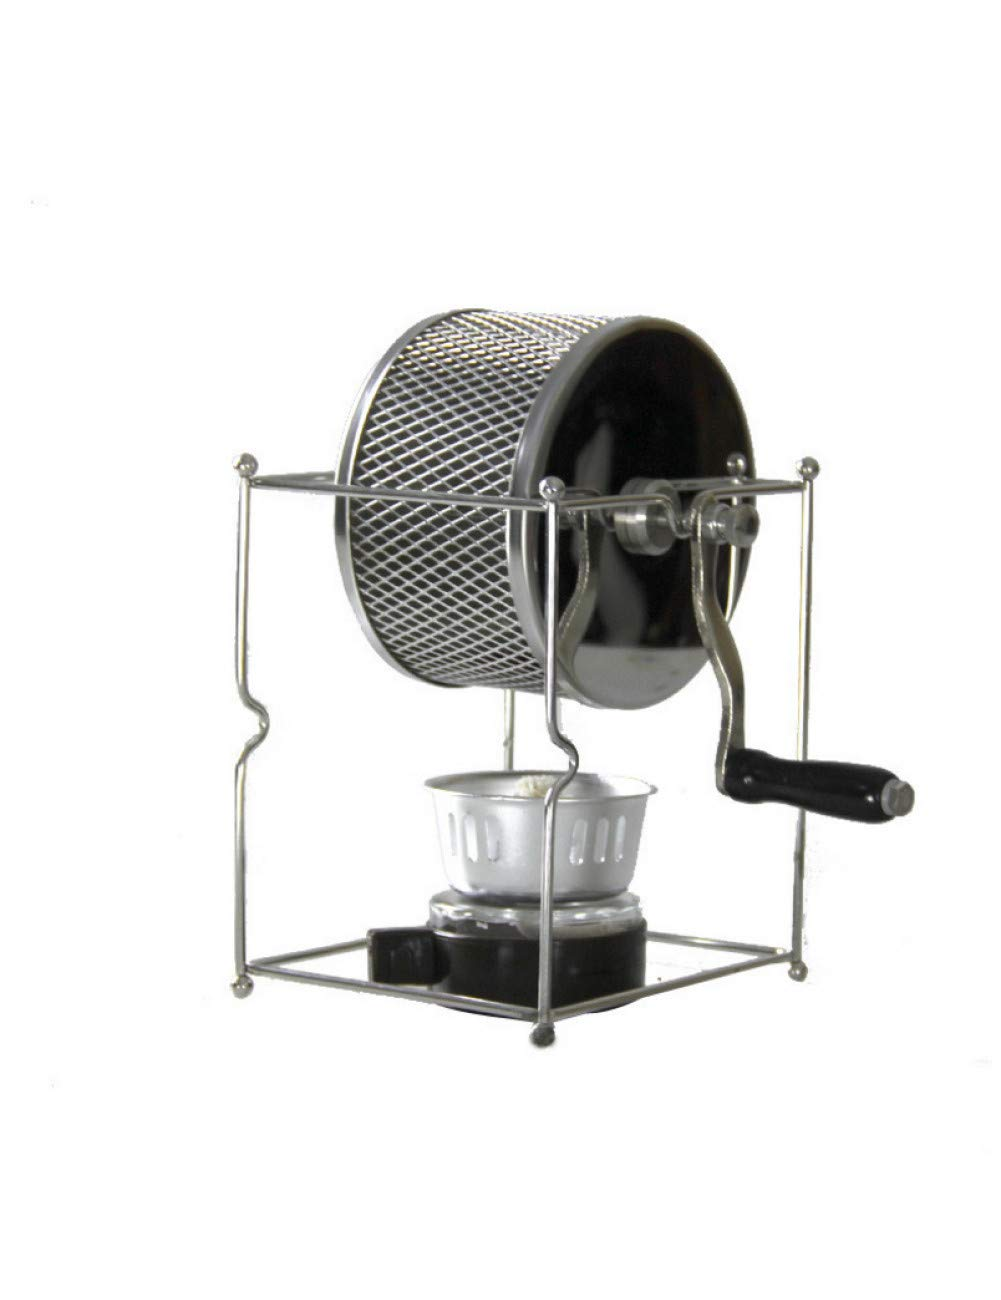 DTBA-Stainless-Steel-Coffee-Roaster-Manual-Hand-Operated-Rotary-Gas-Alcohol-Stove-Bean-Baking-Maker-Espresso-Machine-Stainless-steel